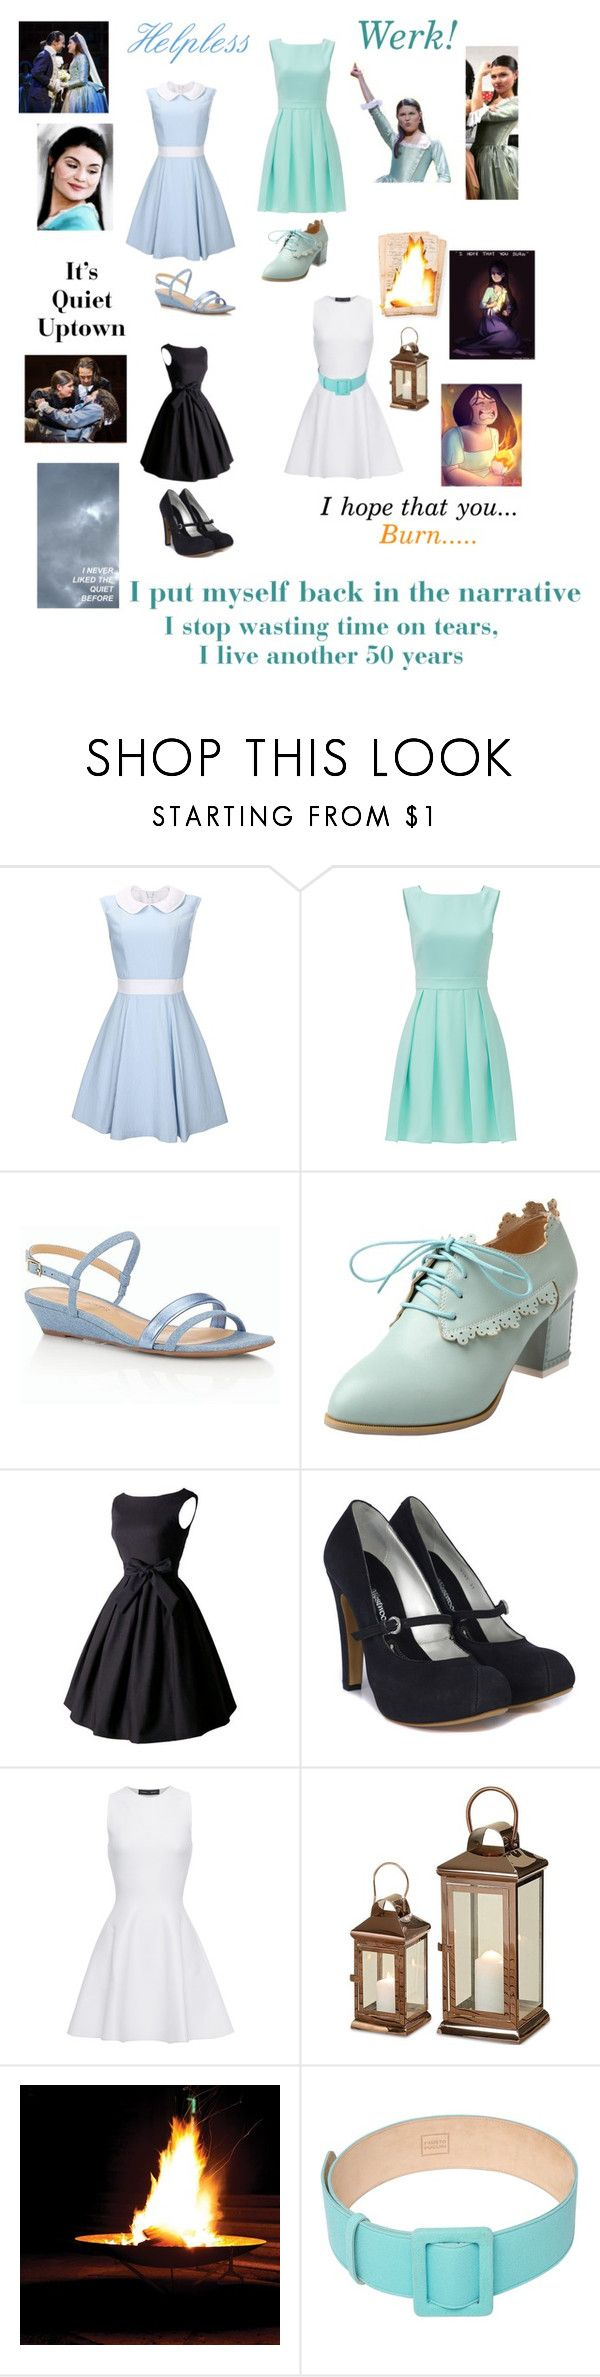 """Modern Elizabeth Schuyler Hamilton-Hamilton"" by silverbellatrix ❤ liked on Polyvore featuring Kate Spade, Talbots, Vivienne Westwood, Proenza Schouler, FAUSTO PUGLISI and modern"